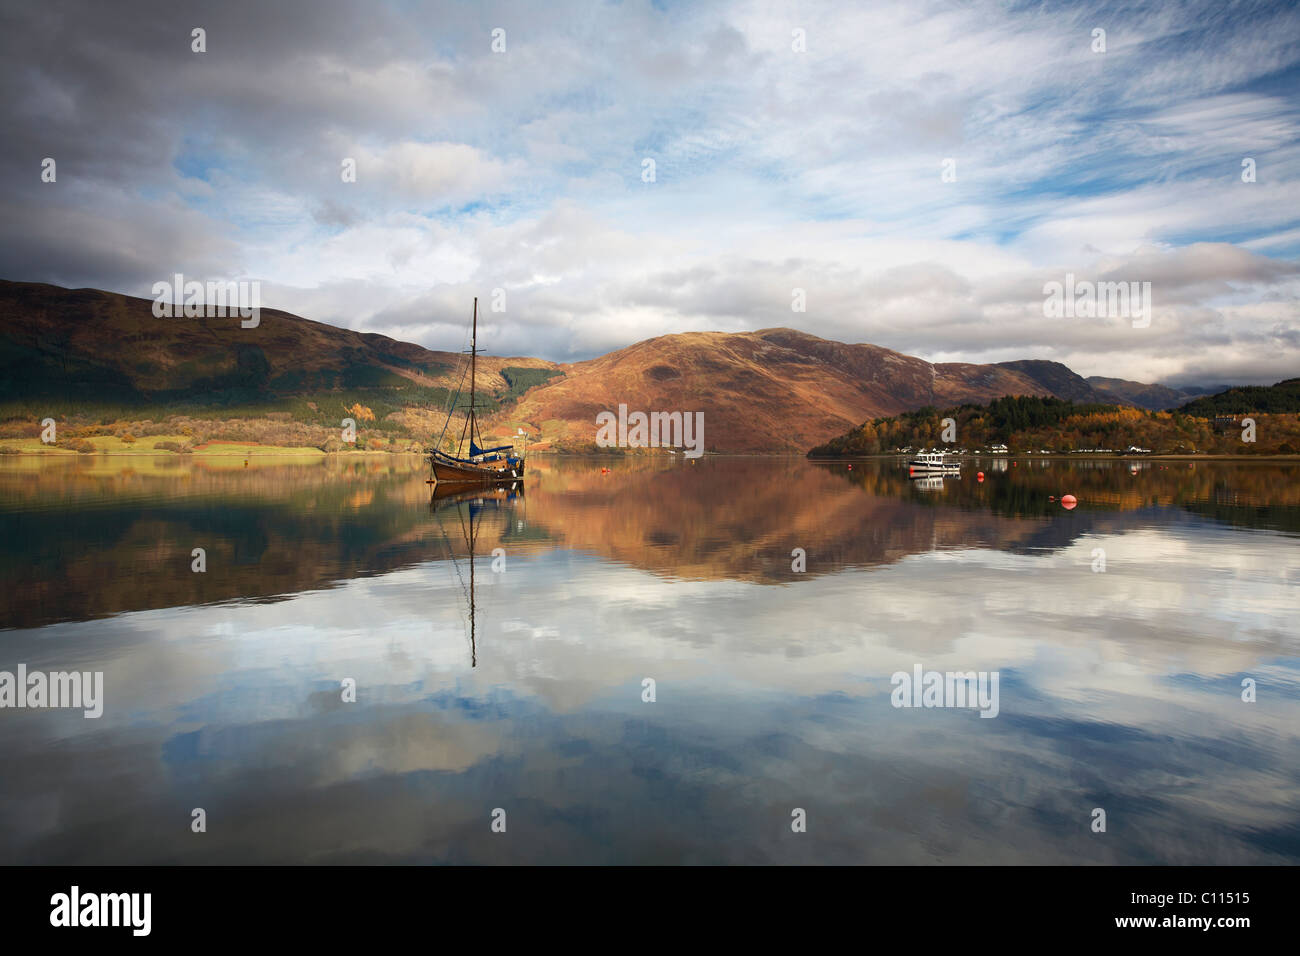 Loch Leven Reflections - Stock Image